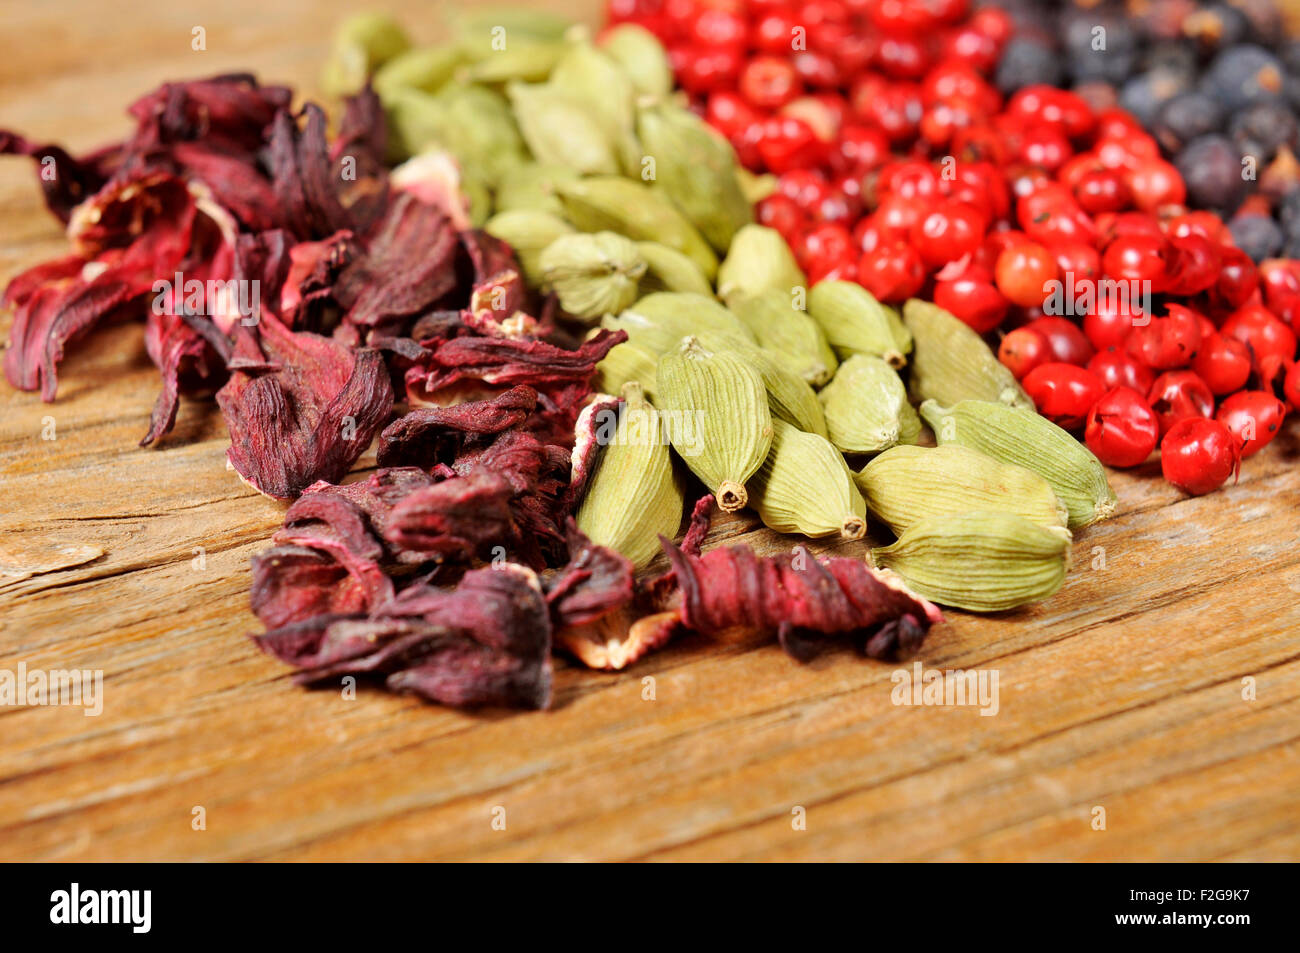 Dried hibiscus flowers stock photos dried hibiscus flowers stock a pile of dried hibiscus flowers green cardamom pink peppercorns and juniper berries on izmirmasajfo